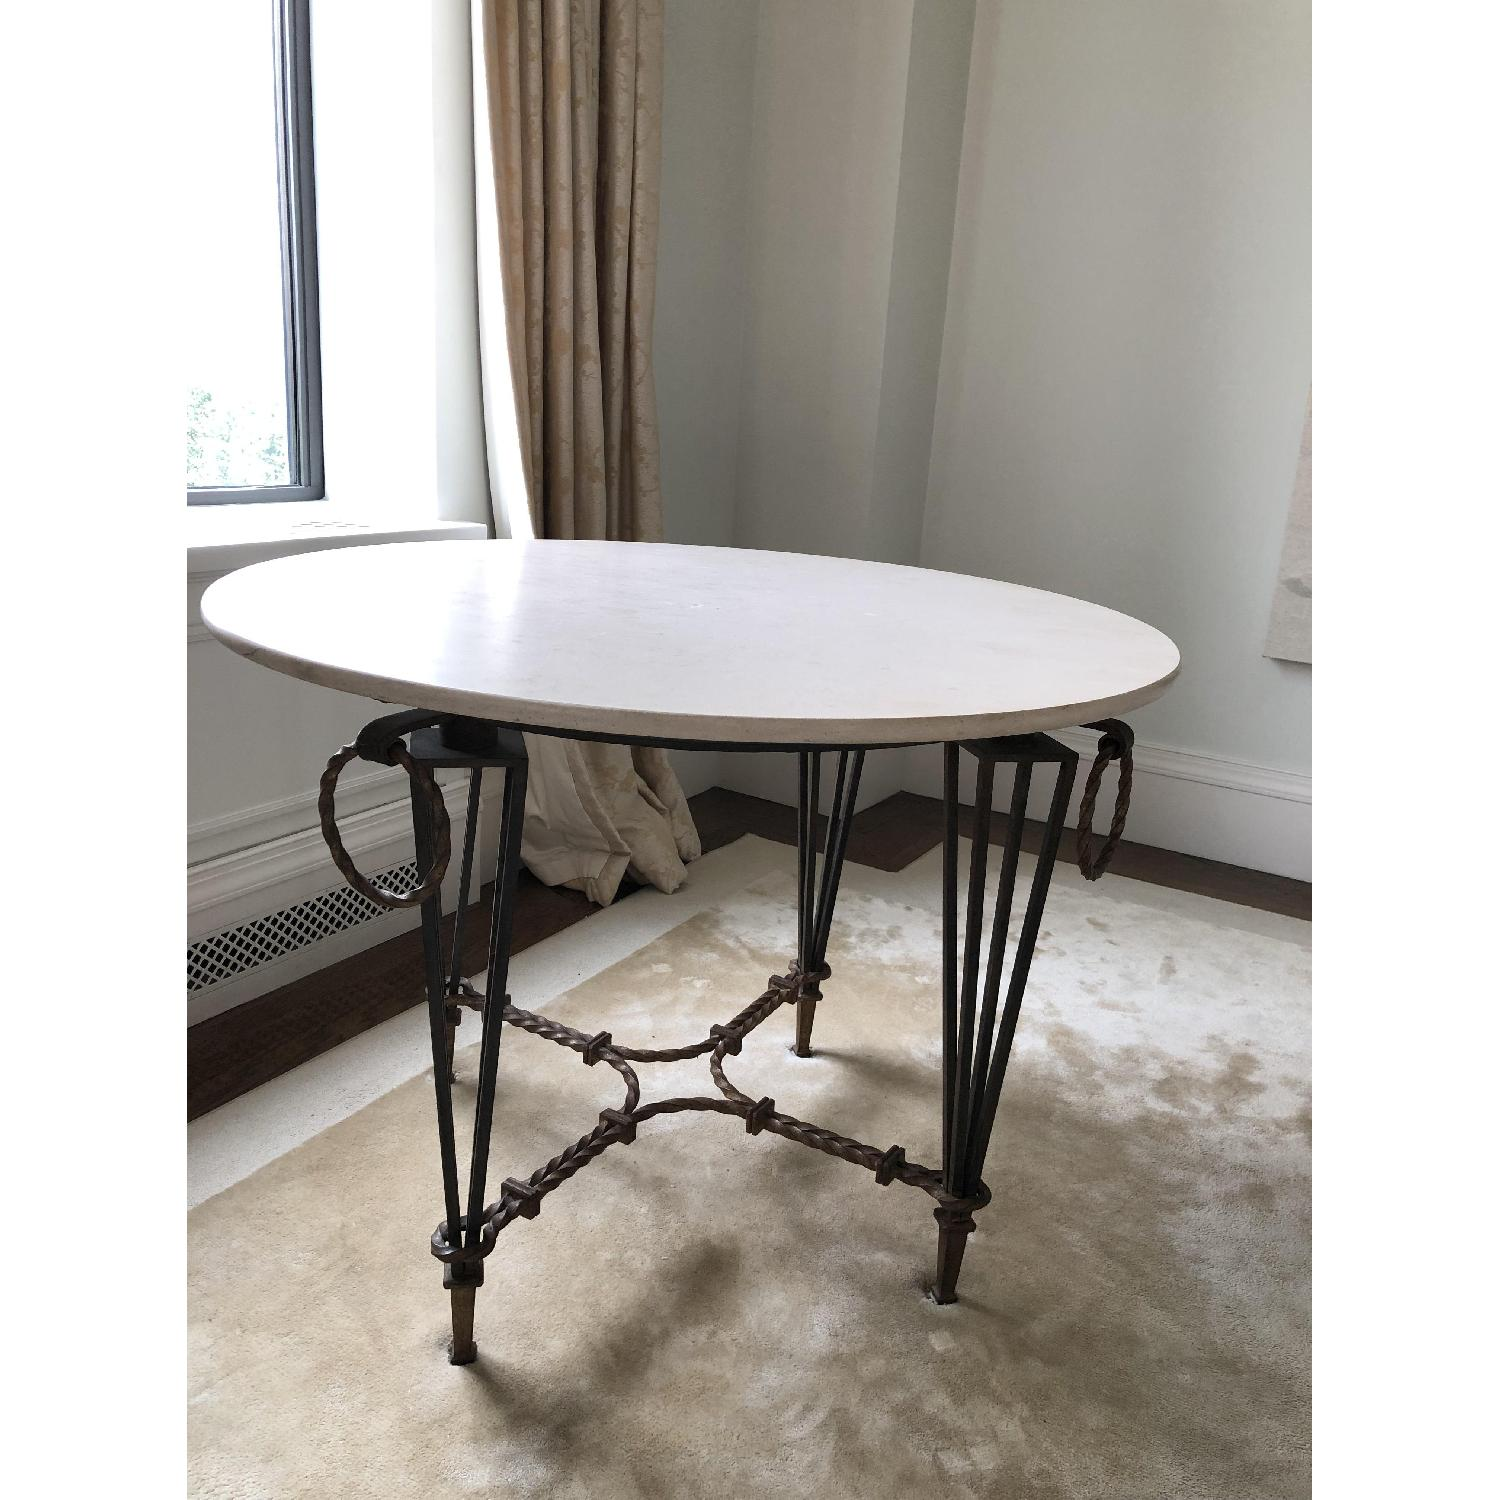 Vintage Iron & Marble Dining Table - image-2